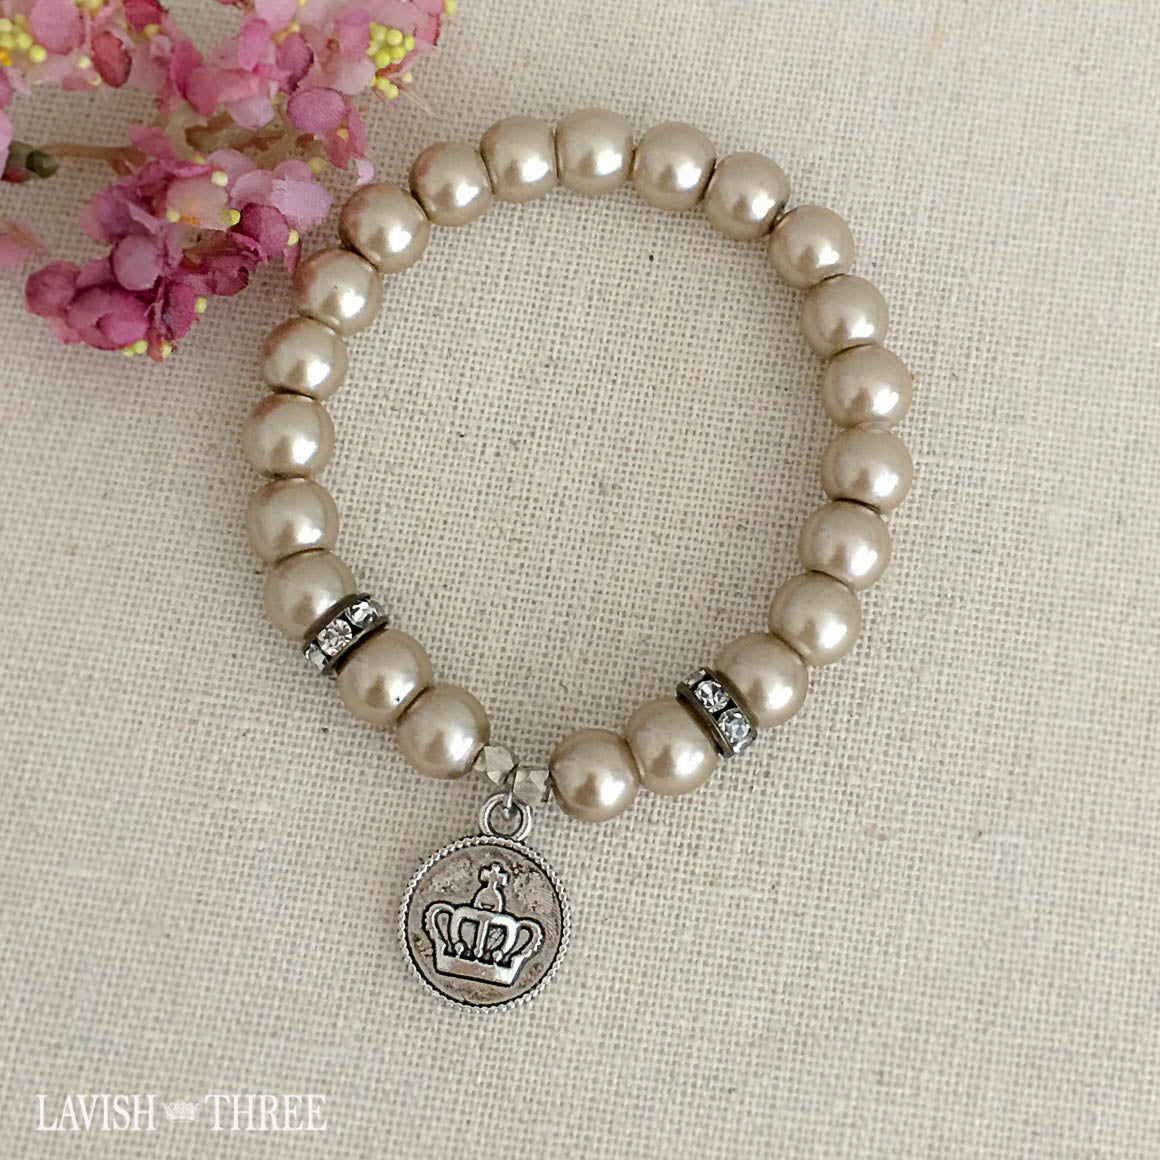 Crown silver charm taupe pearl bracelet lavish three 3